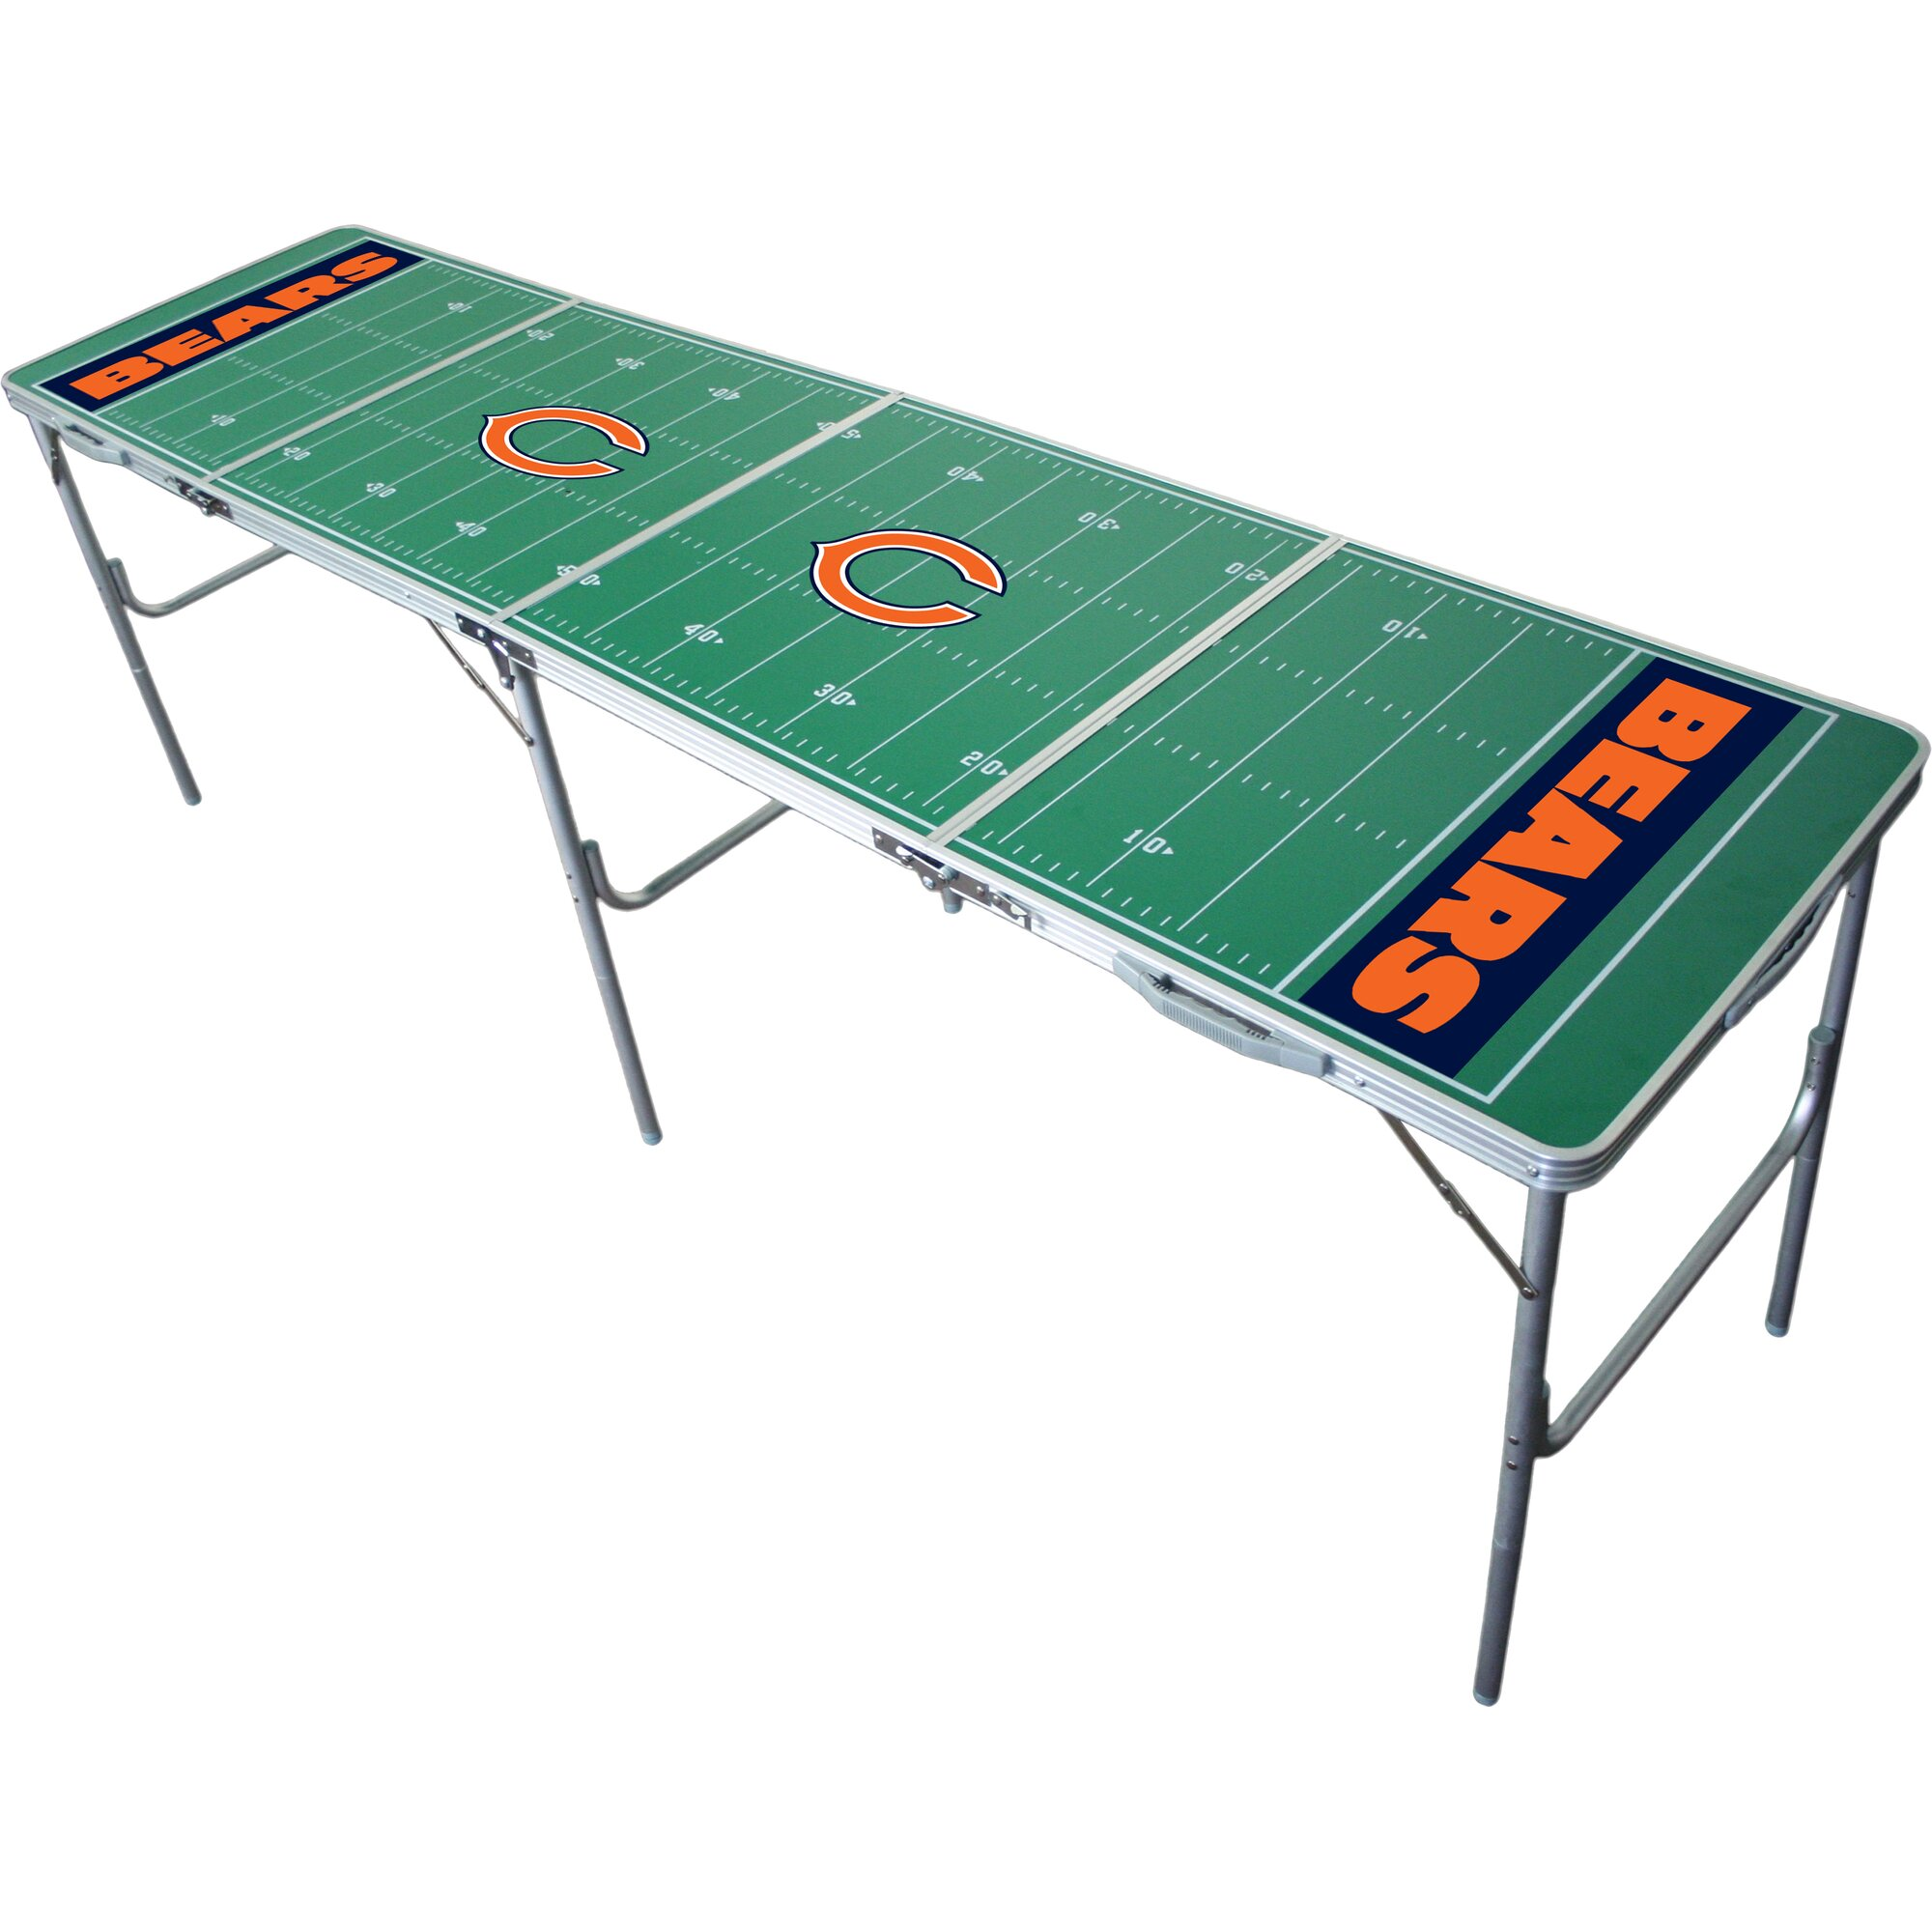 Dfw Furniture Pittsburgh: Tailgate Toss NFL Tailgate Table & Reviews